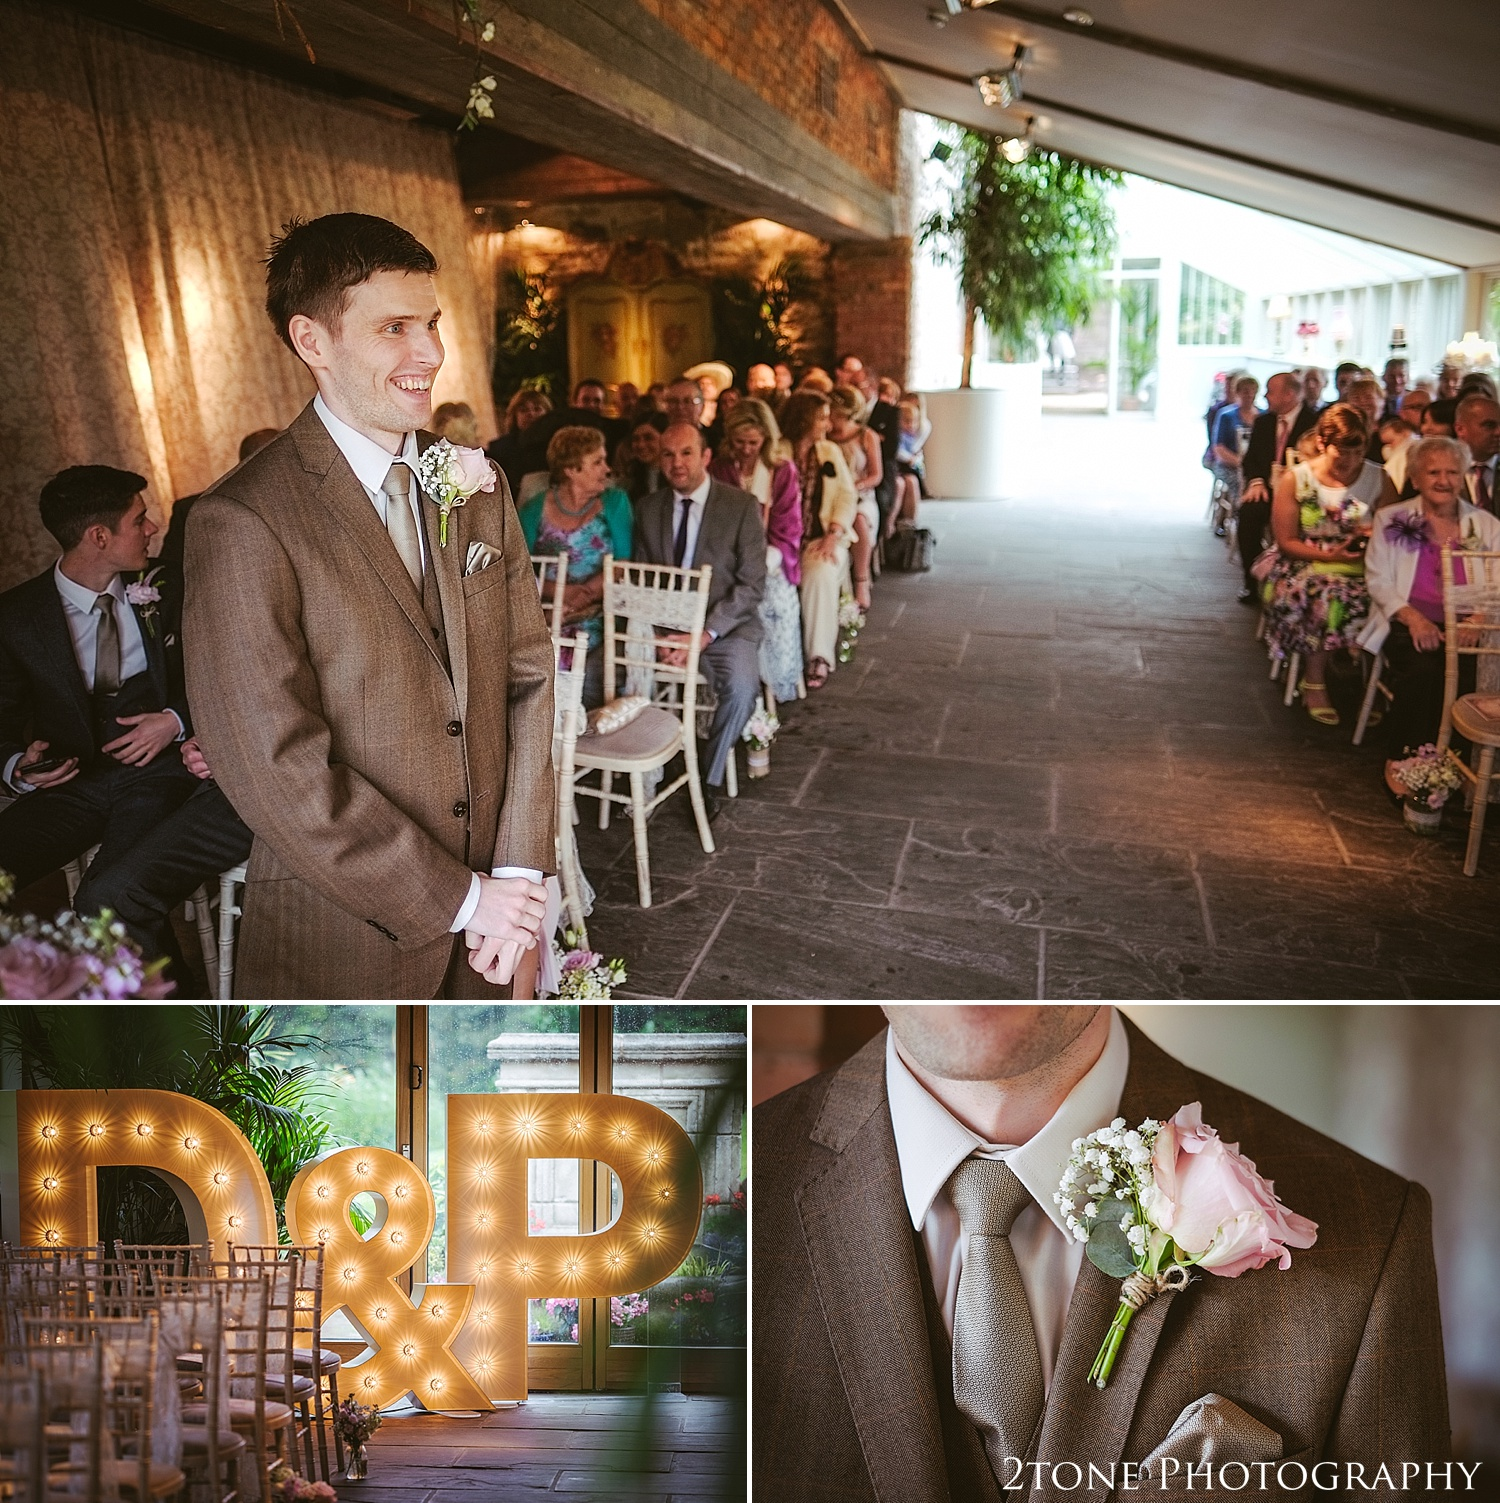 A wedding ceremony in the Glass House in Newton Hall by wedding photographers based in Durham.  www.2tonephotography.co.uk